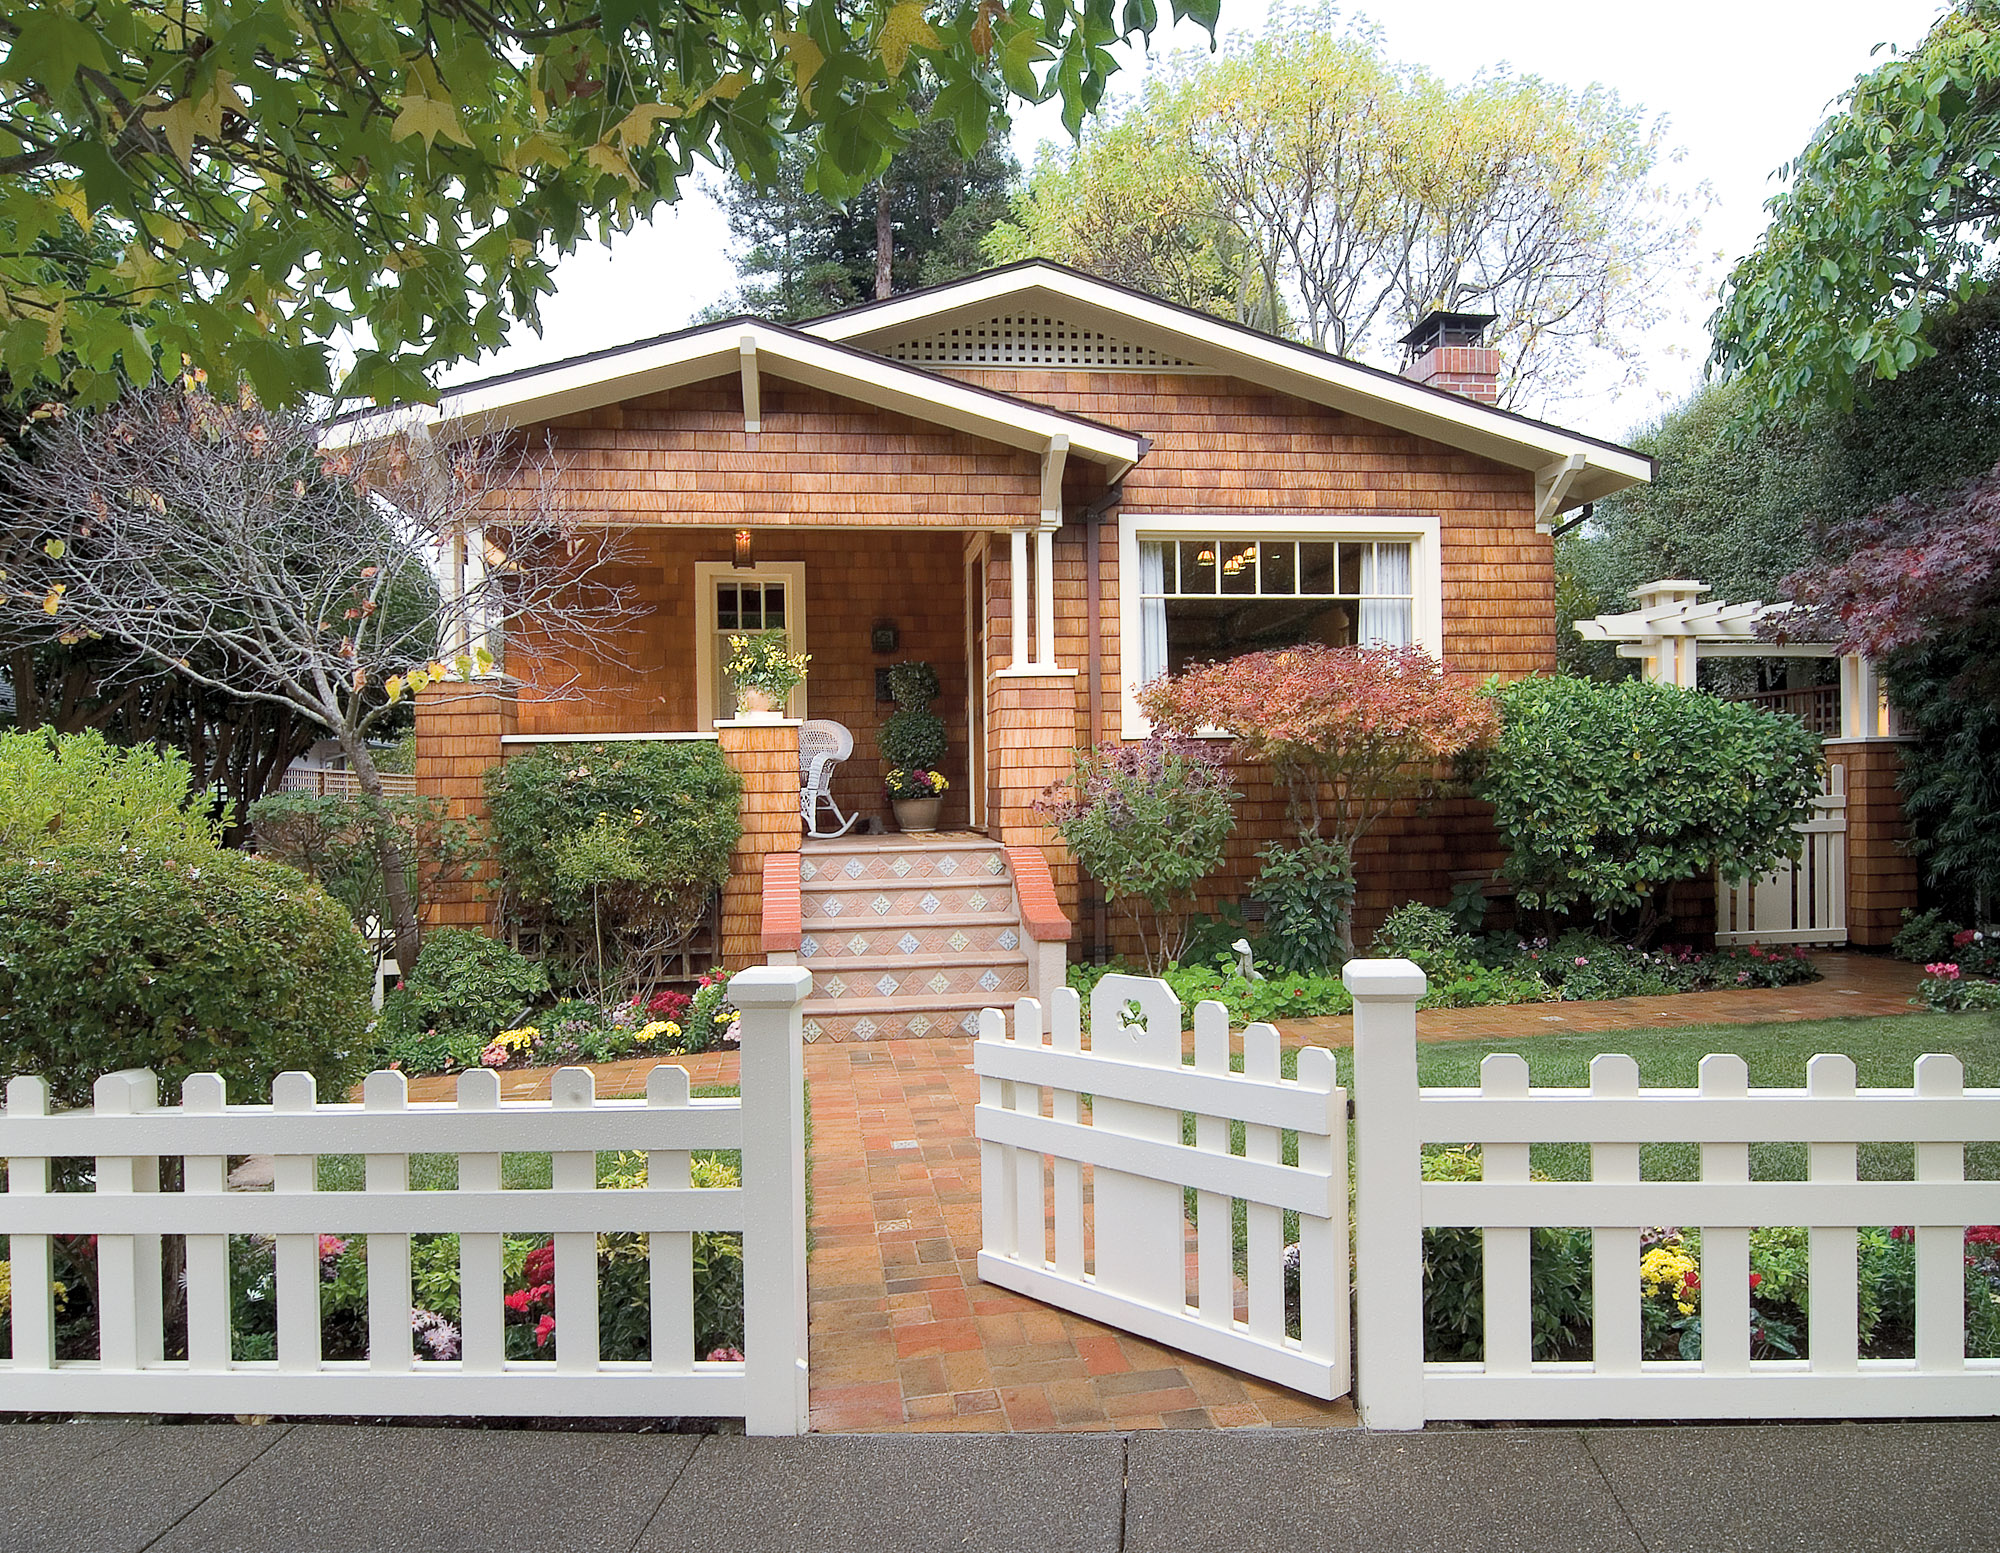 bungalow with white fence